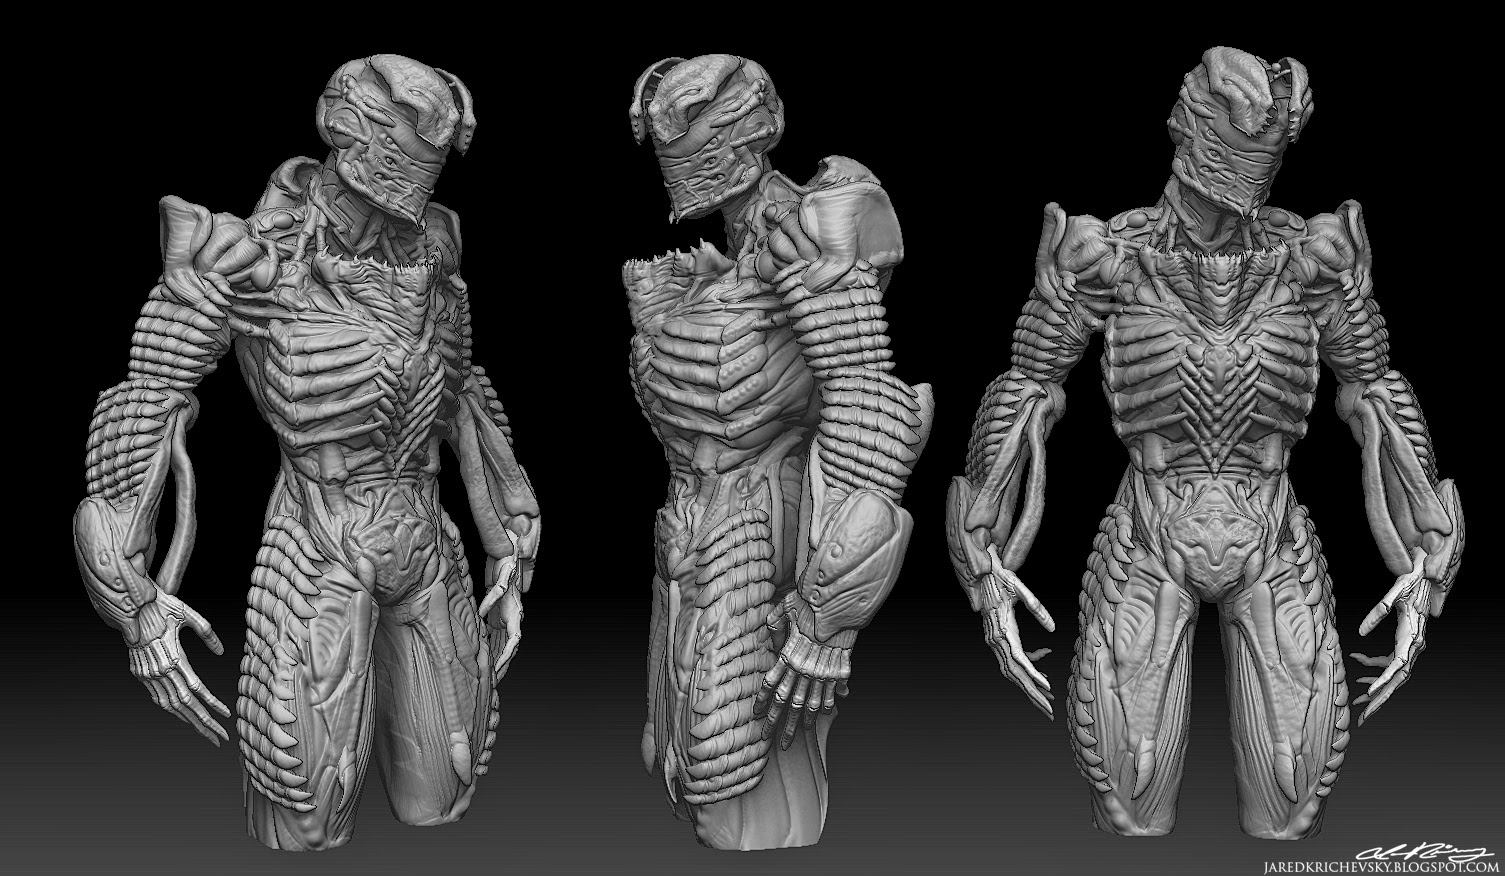 jared krichevsky  organic bio suit isaac from dead space done for the facebook group brainstorm